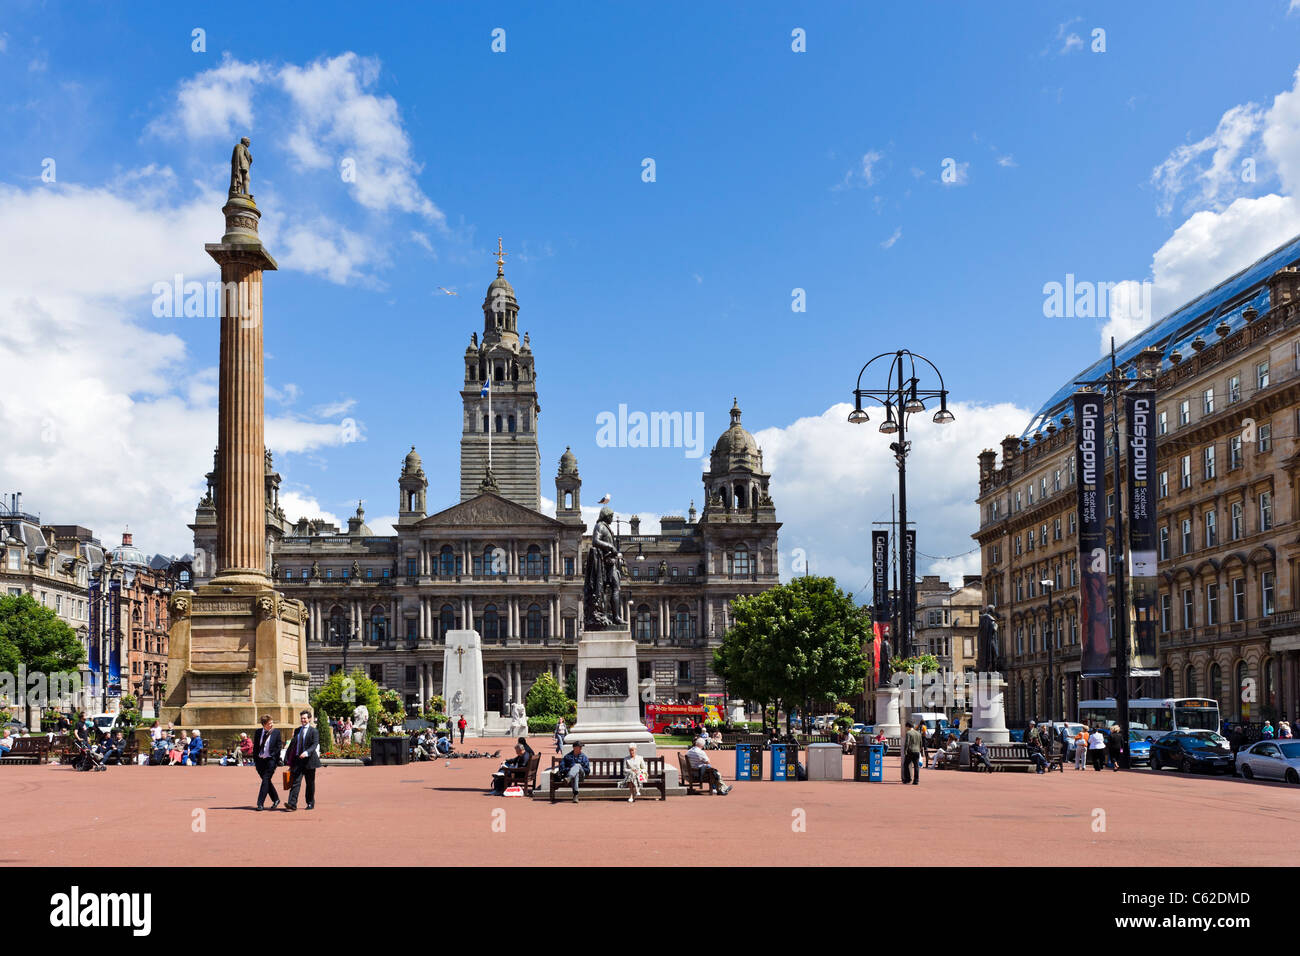 George Square in the city centre with the City Chambers in the background, Glasgow, Scotland, UK - Stock Image